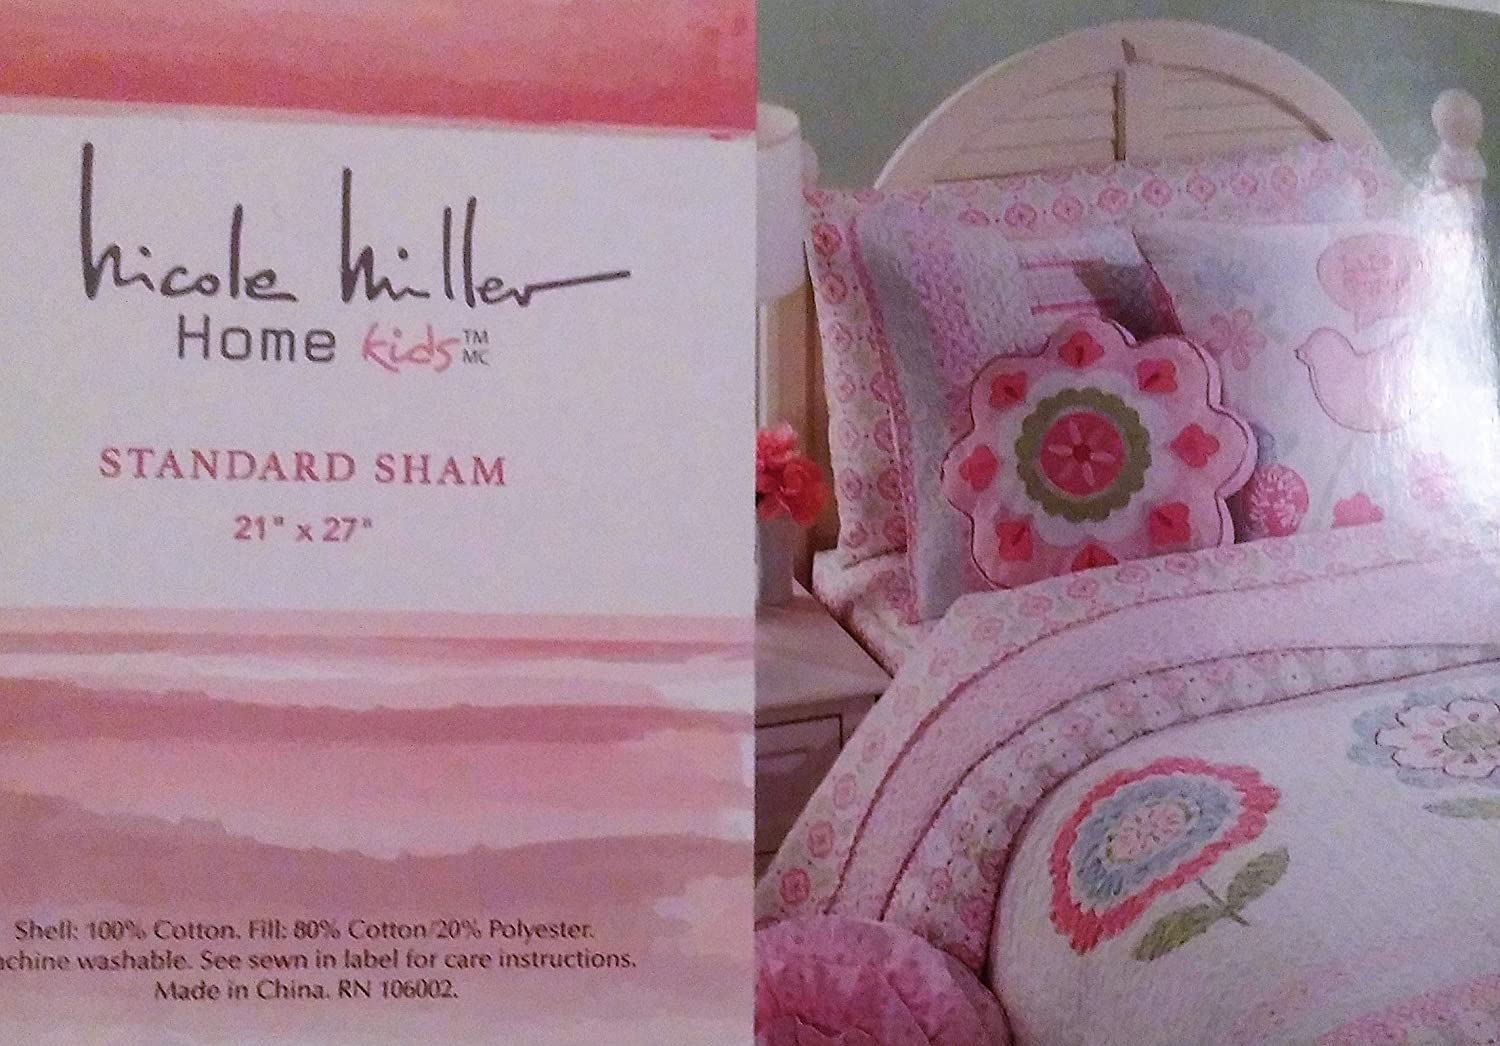 Nicole Miller Home Kids Standard Sham Pink, White, Blue and Green